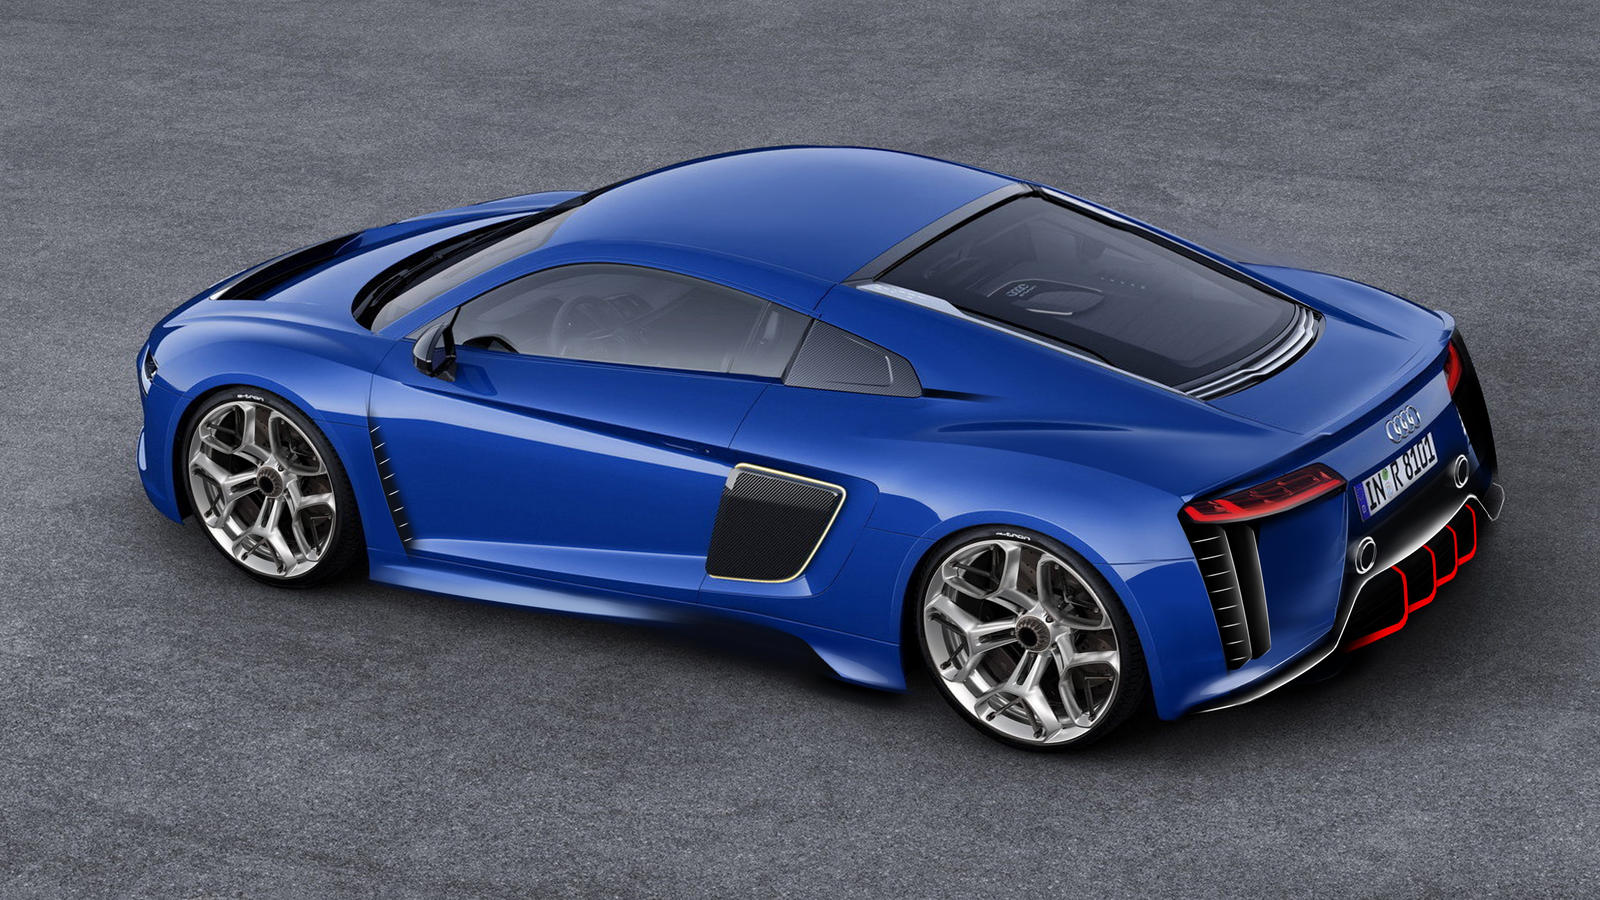 Audi R8 Concept 2020 By Thorsten Krisch On Deviantart